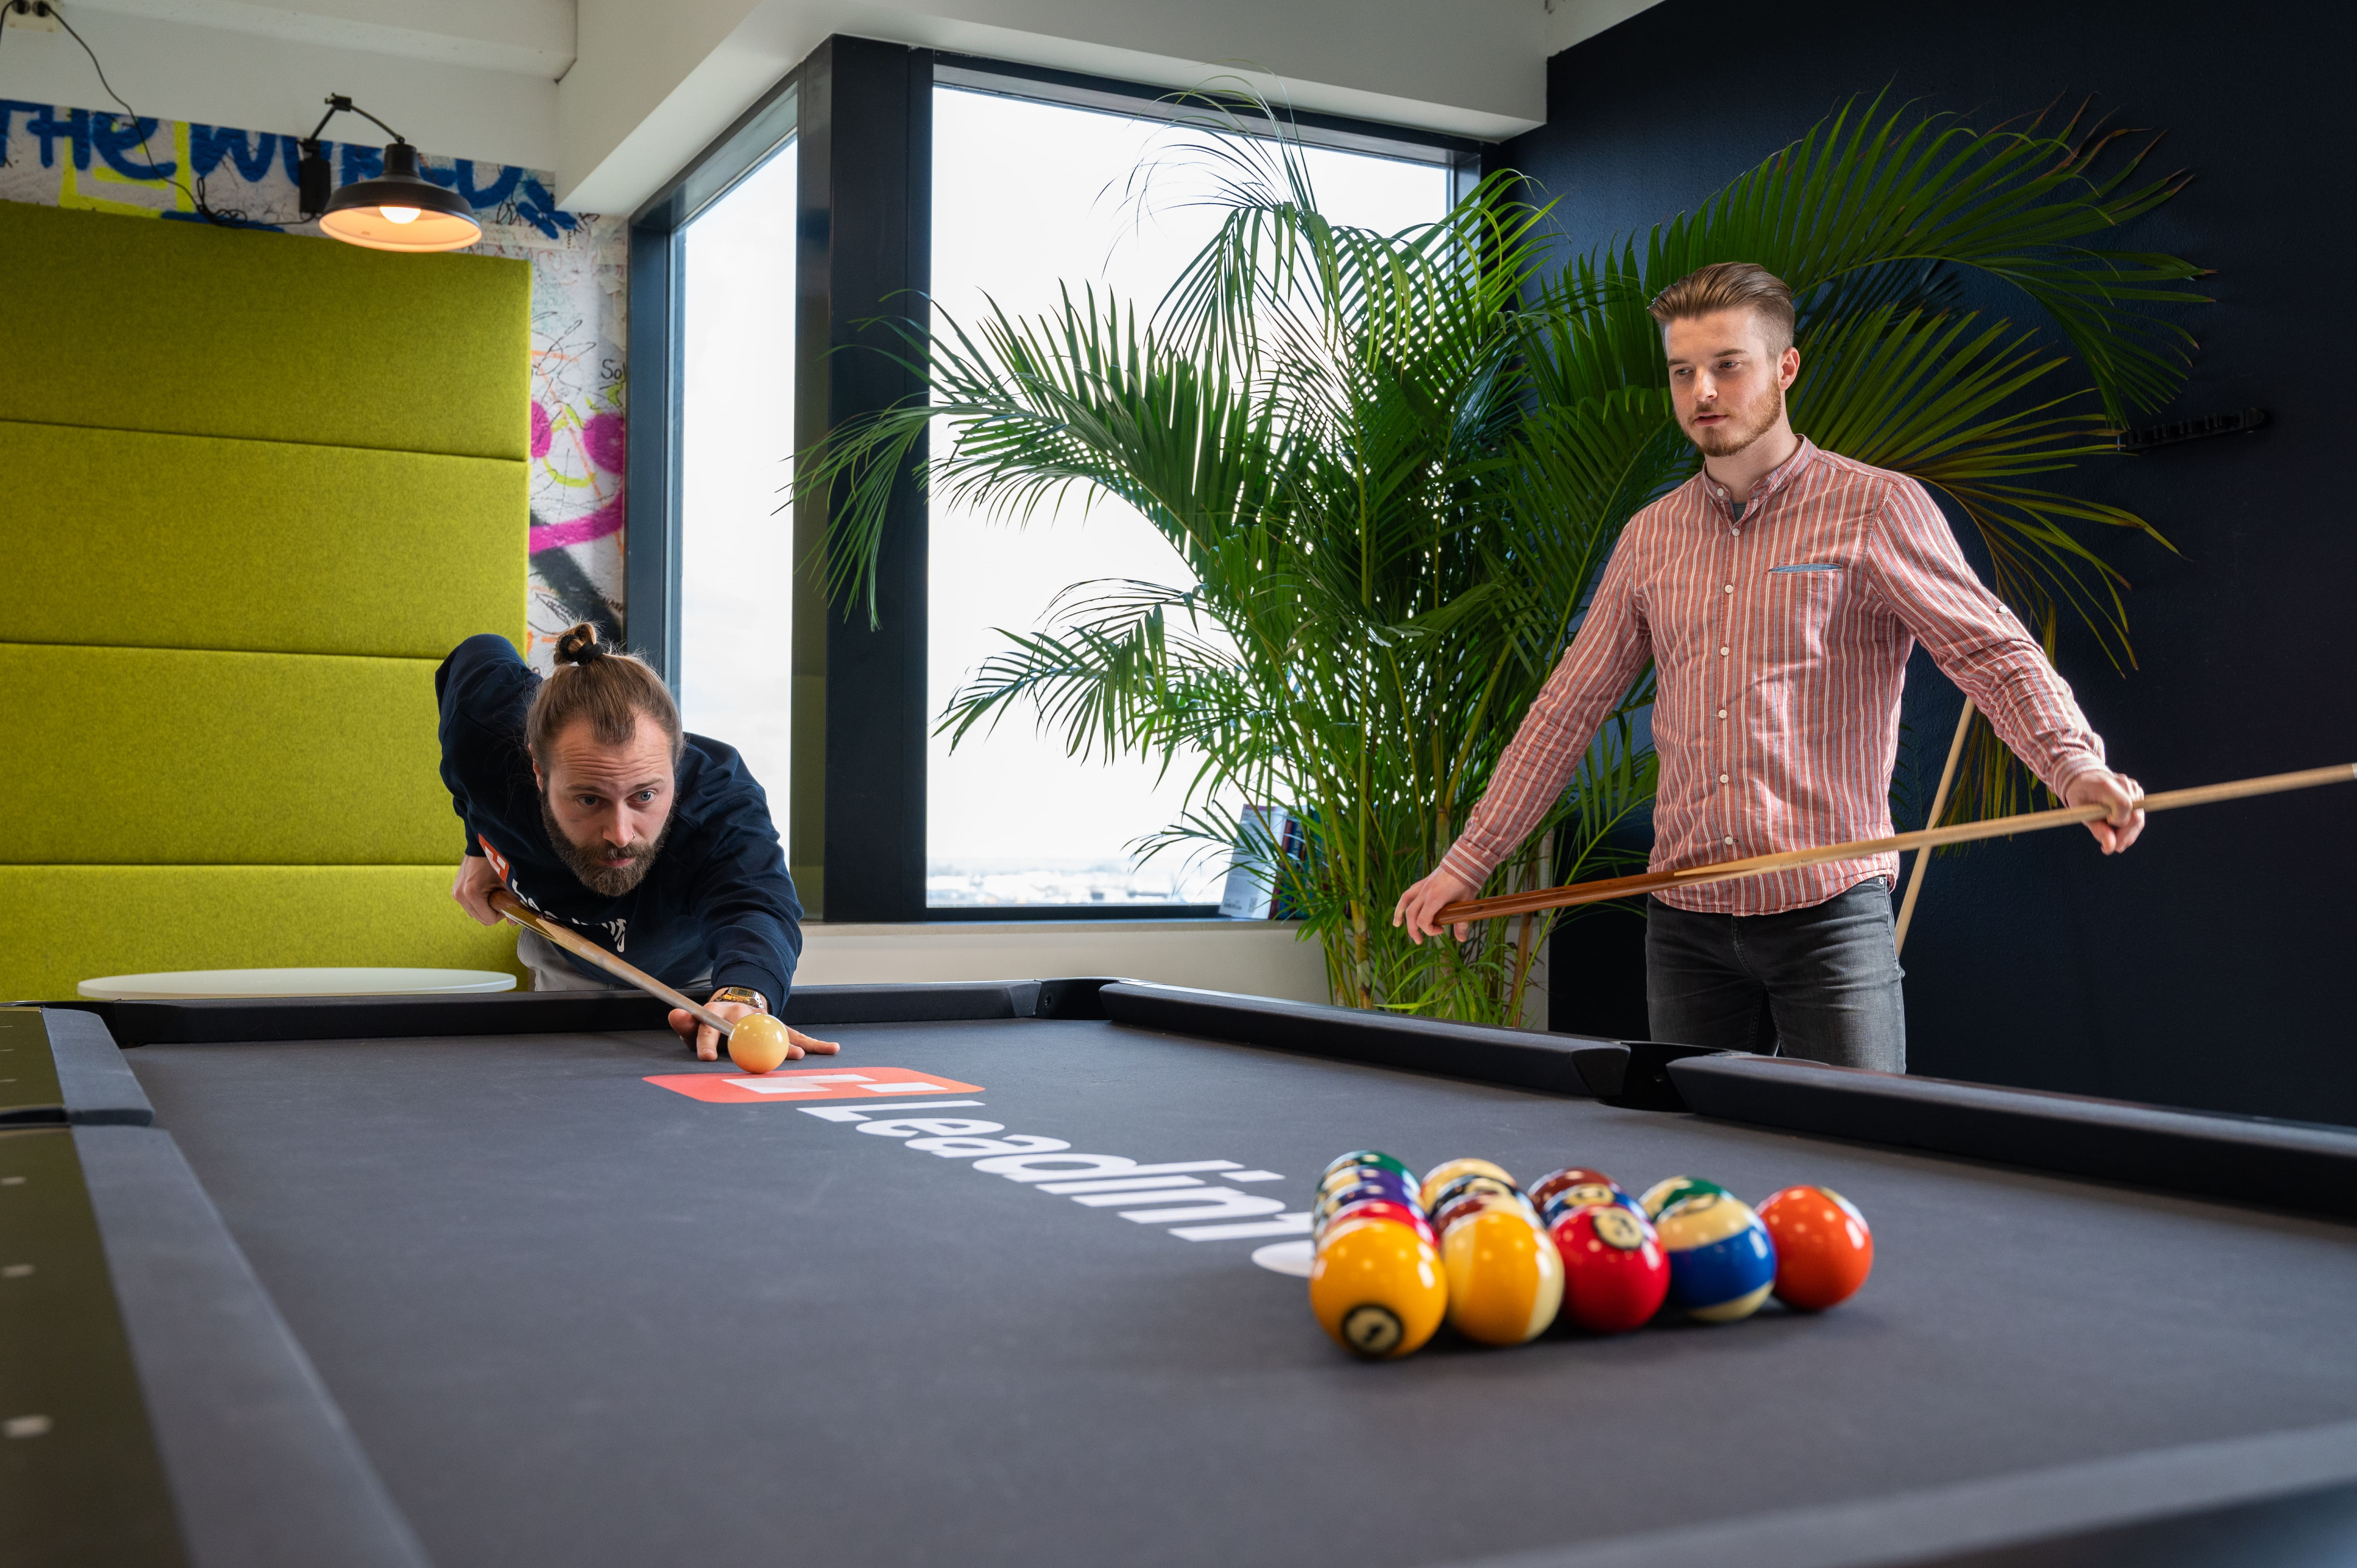 Two leadinfo employees playing pool